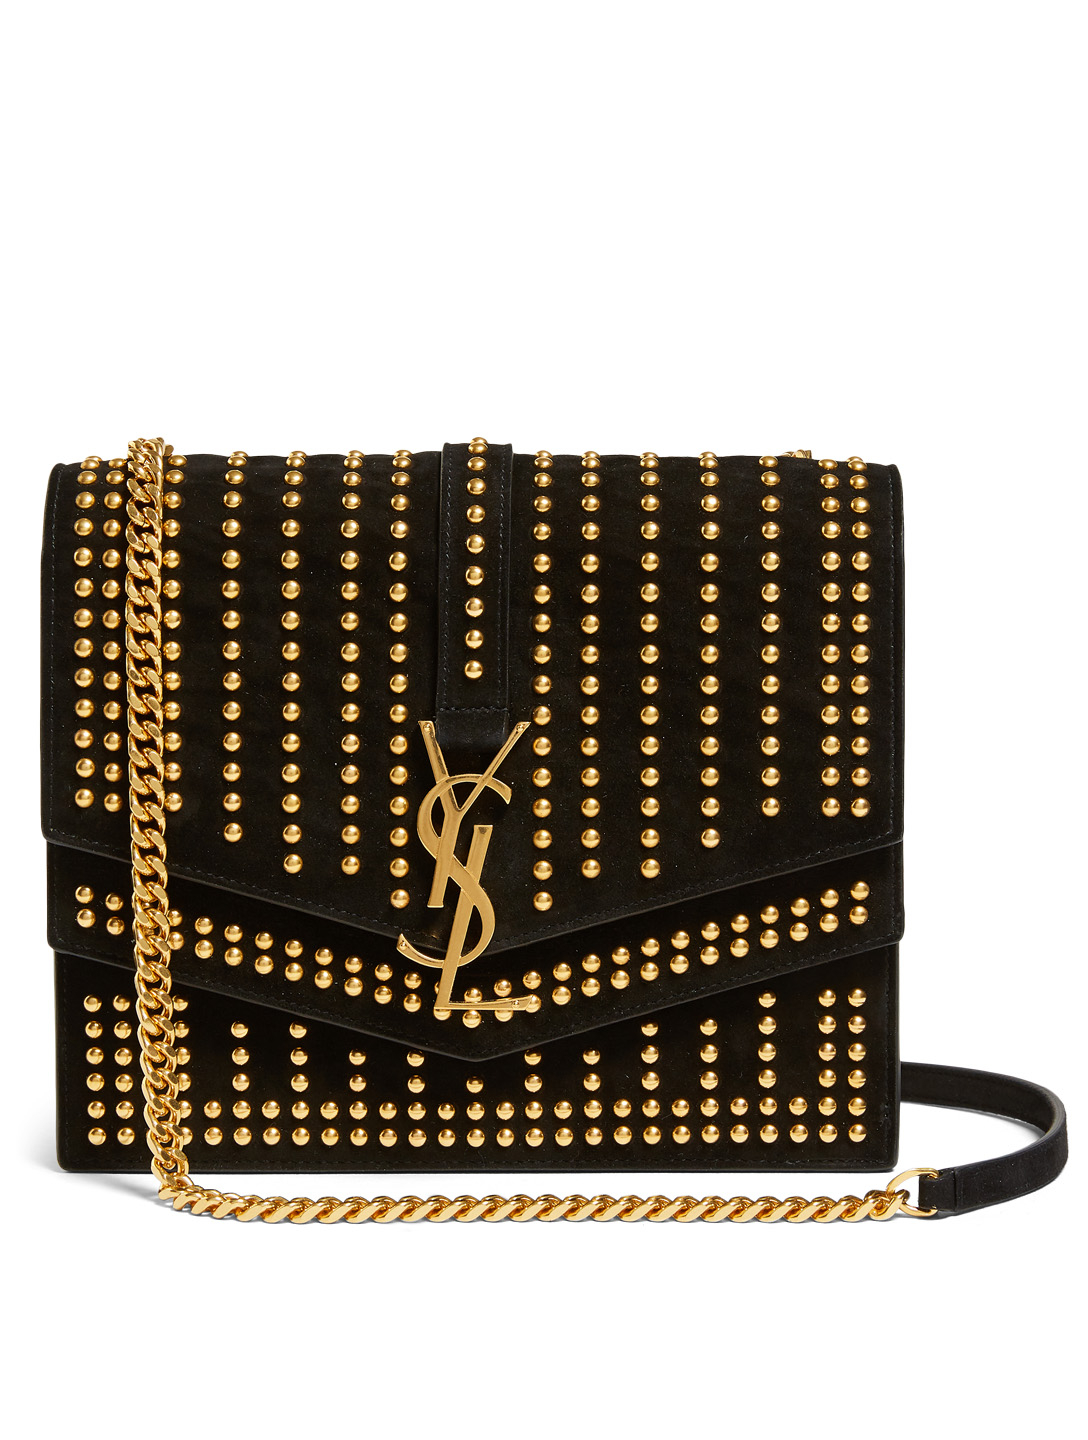 SAINT LAURENT PARIS Medium Monogram Sulpice Suede Chain Bag With Studs Womens Black